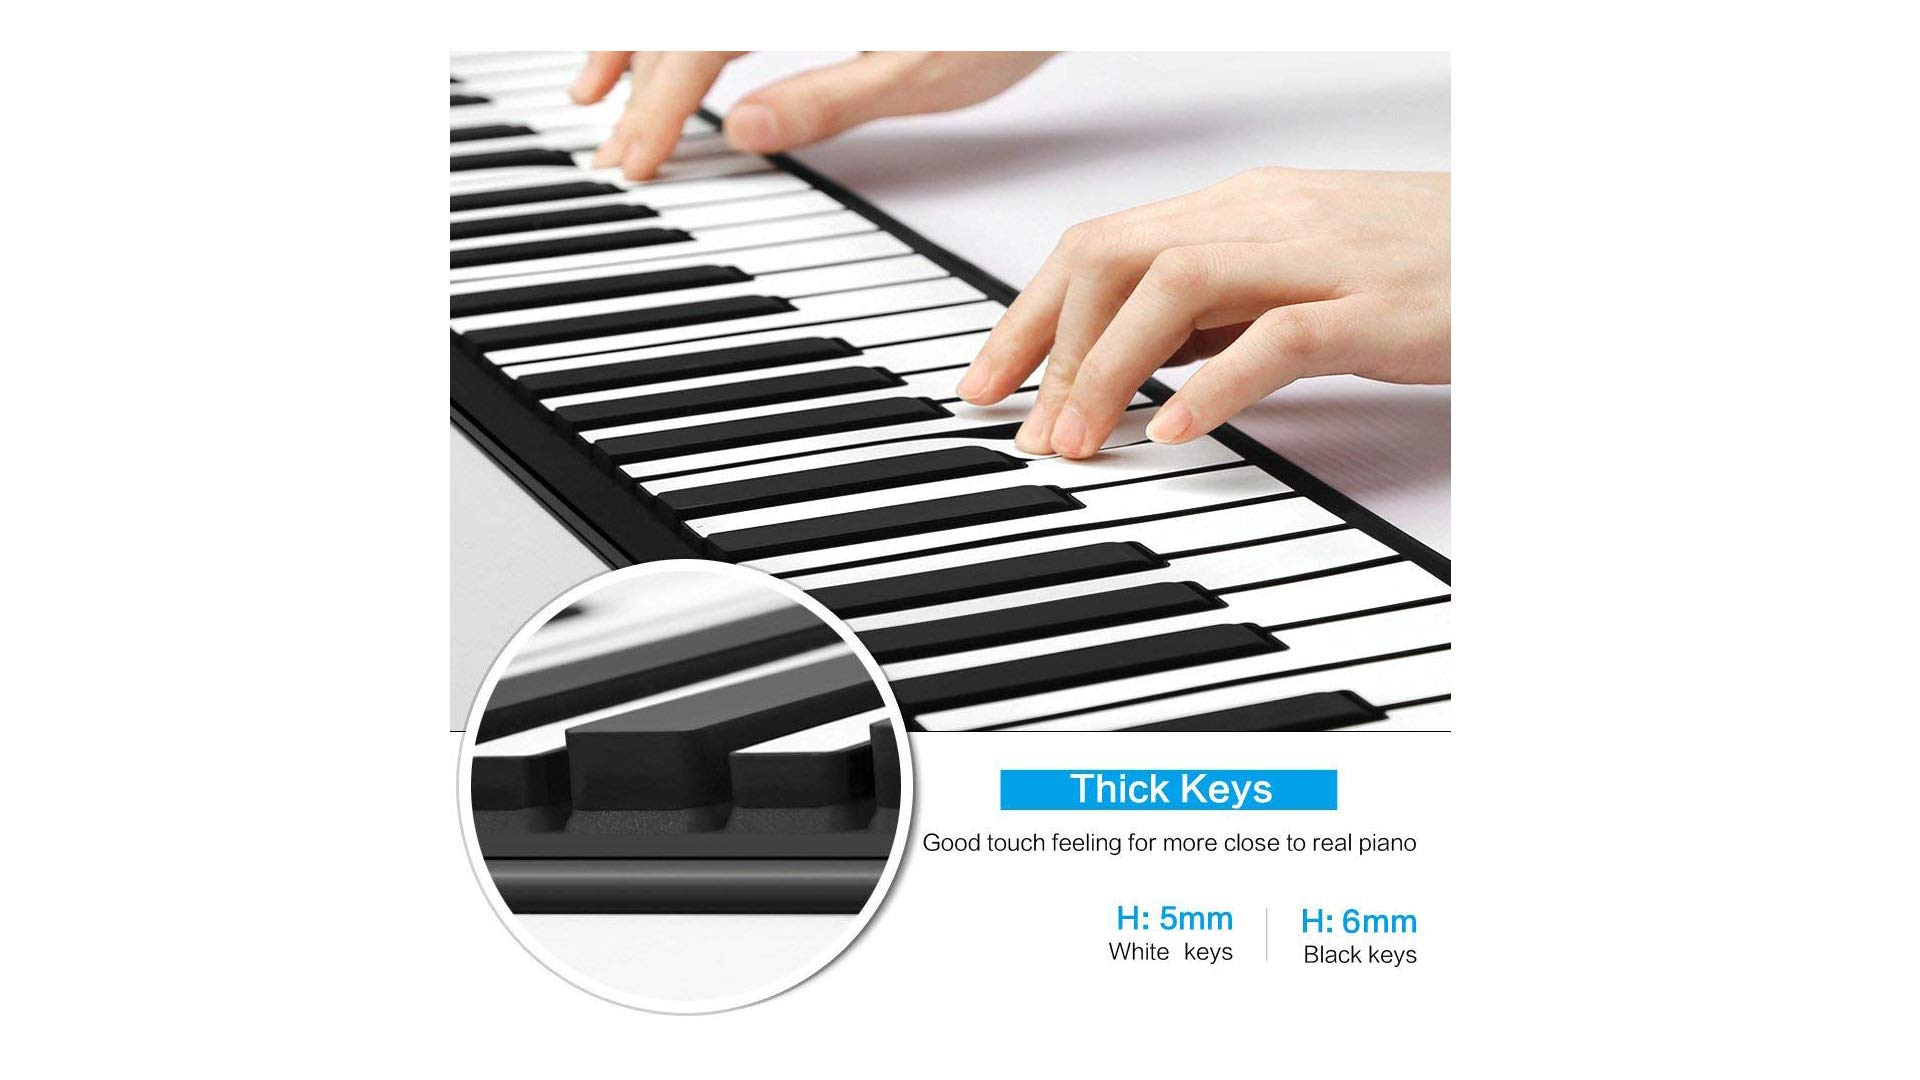 Eshenma Roll up Piano Portable Piano RO-A88 Key Flexible Soft Power Digital roll Keyboard Built-in Loud Dual Speaker can USB Charge AA Battery for Children Beginners (88-2S, White) 2019 Newest by Eshenma (Image #5)